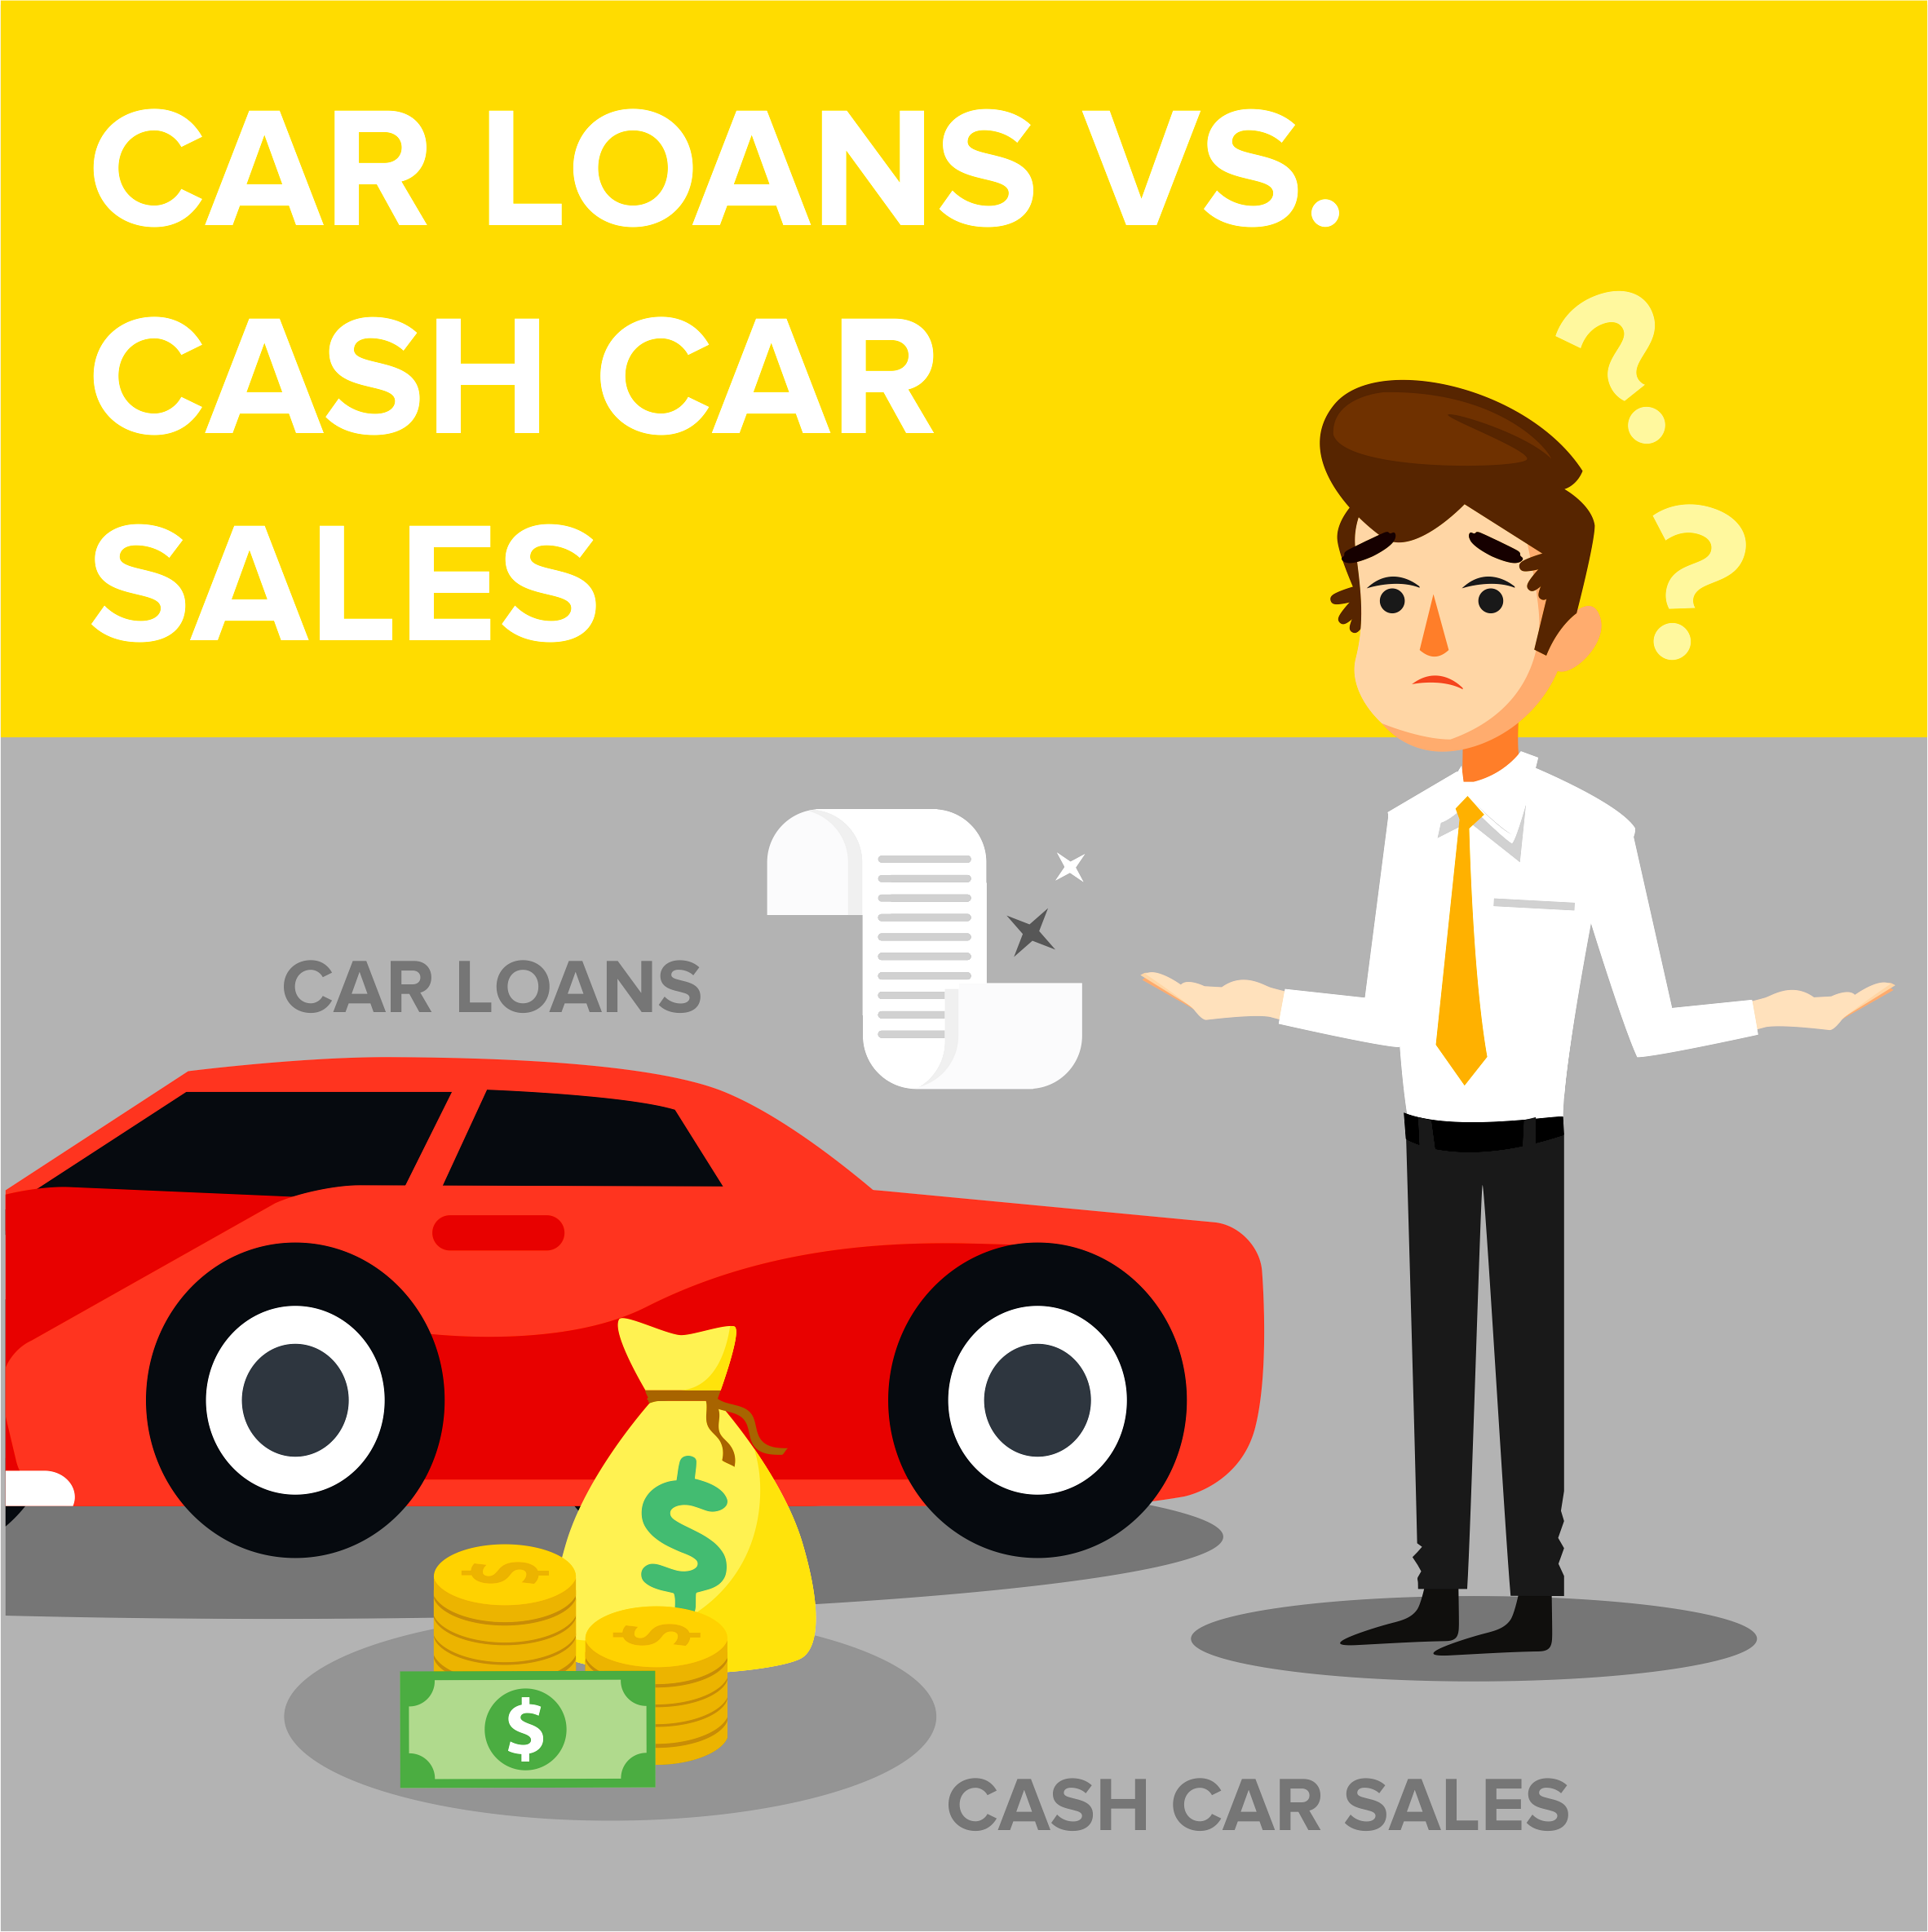 Car Loans Vs. Cash Car Sales